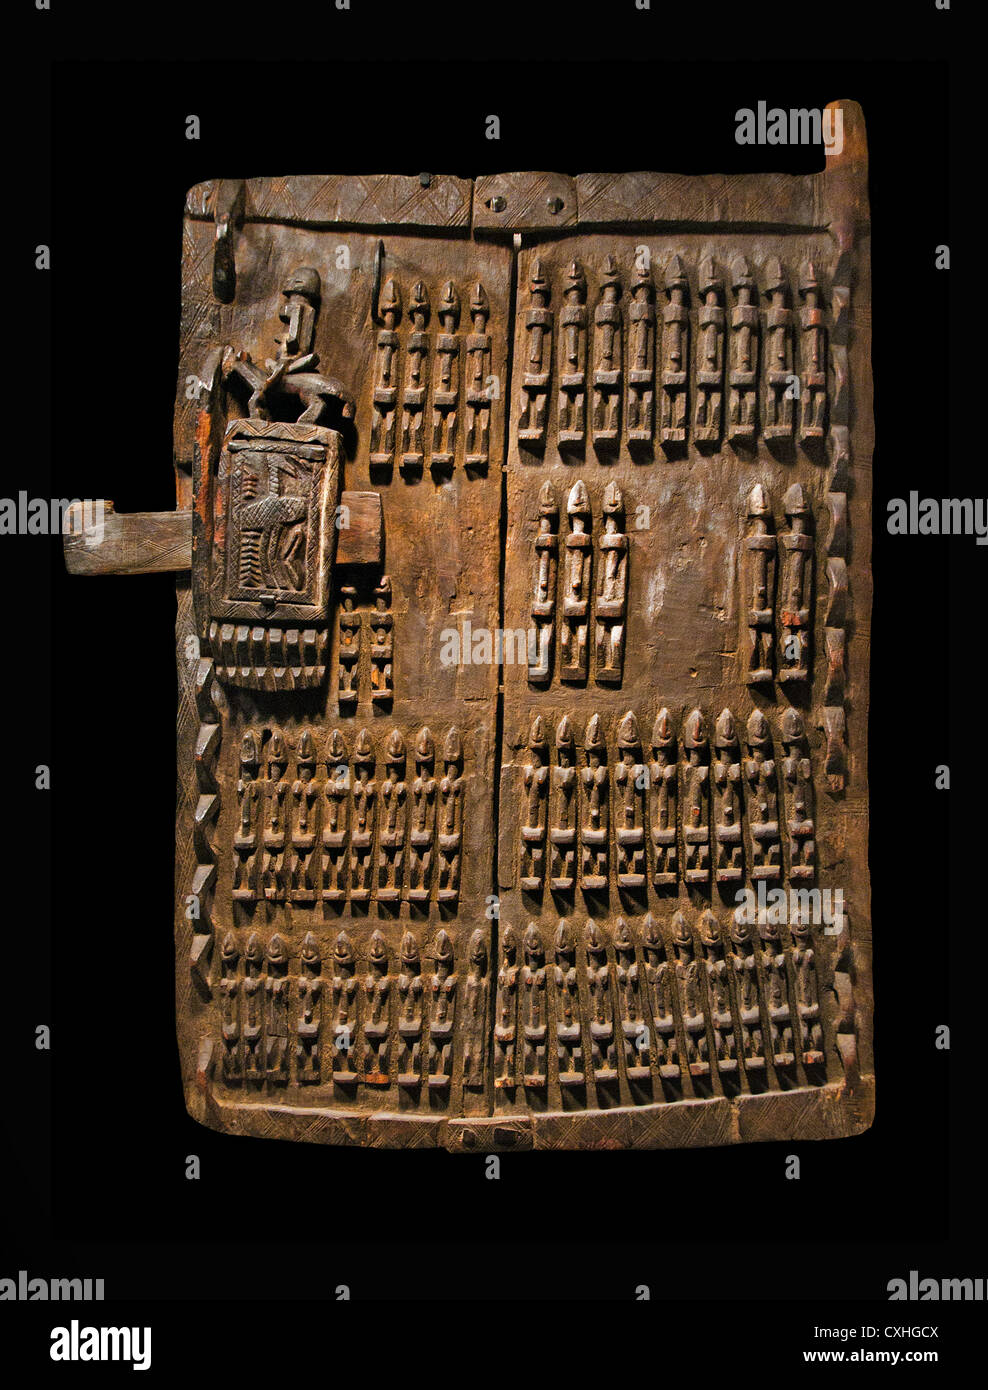 Granary Shutter and Lock Mali Dogon Peoples 19th 20 th Century Wood Iron Africa - Stock Image